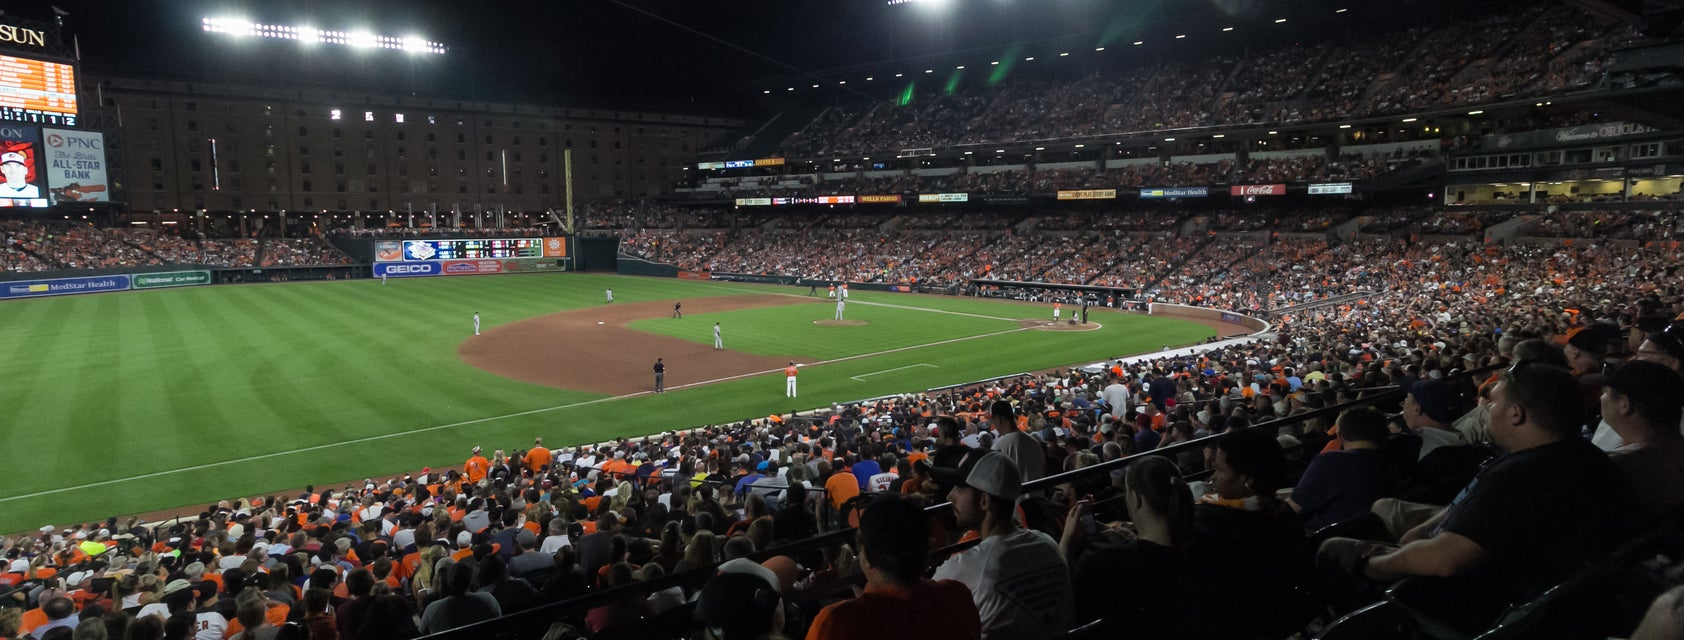 Seat view from Lower Reserve - Outfield